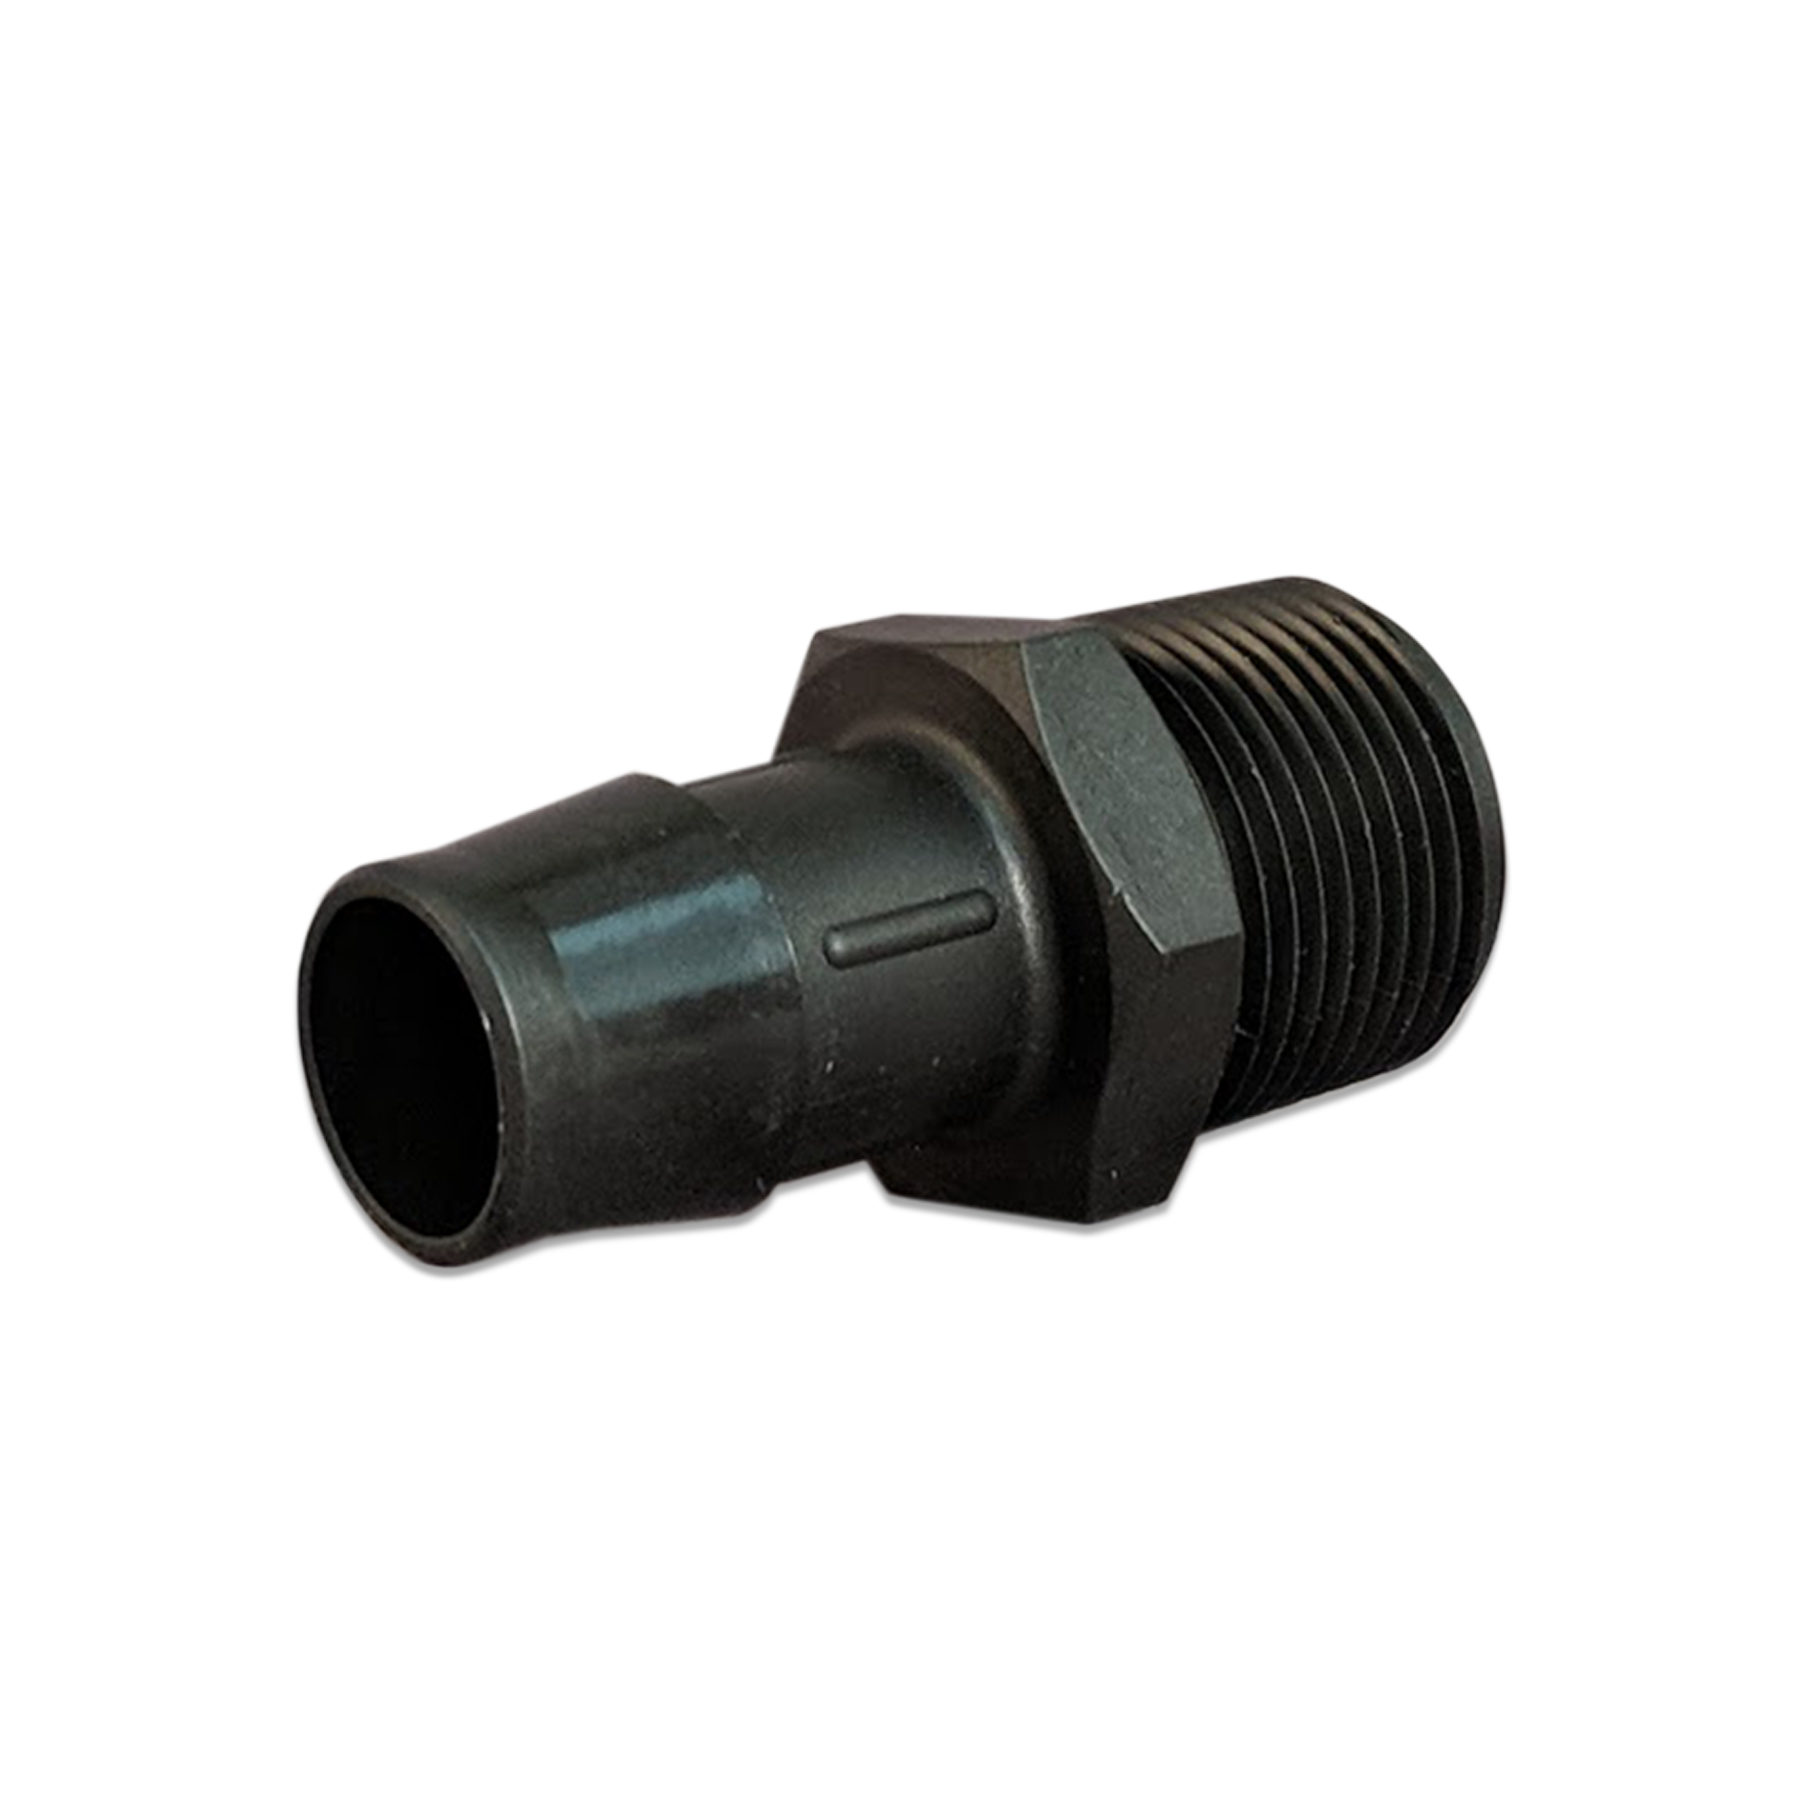 Glass Filled Black Nylon Barb Fitting, 3/4 in. NPT by 3/4 in.